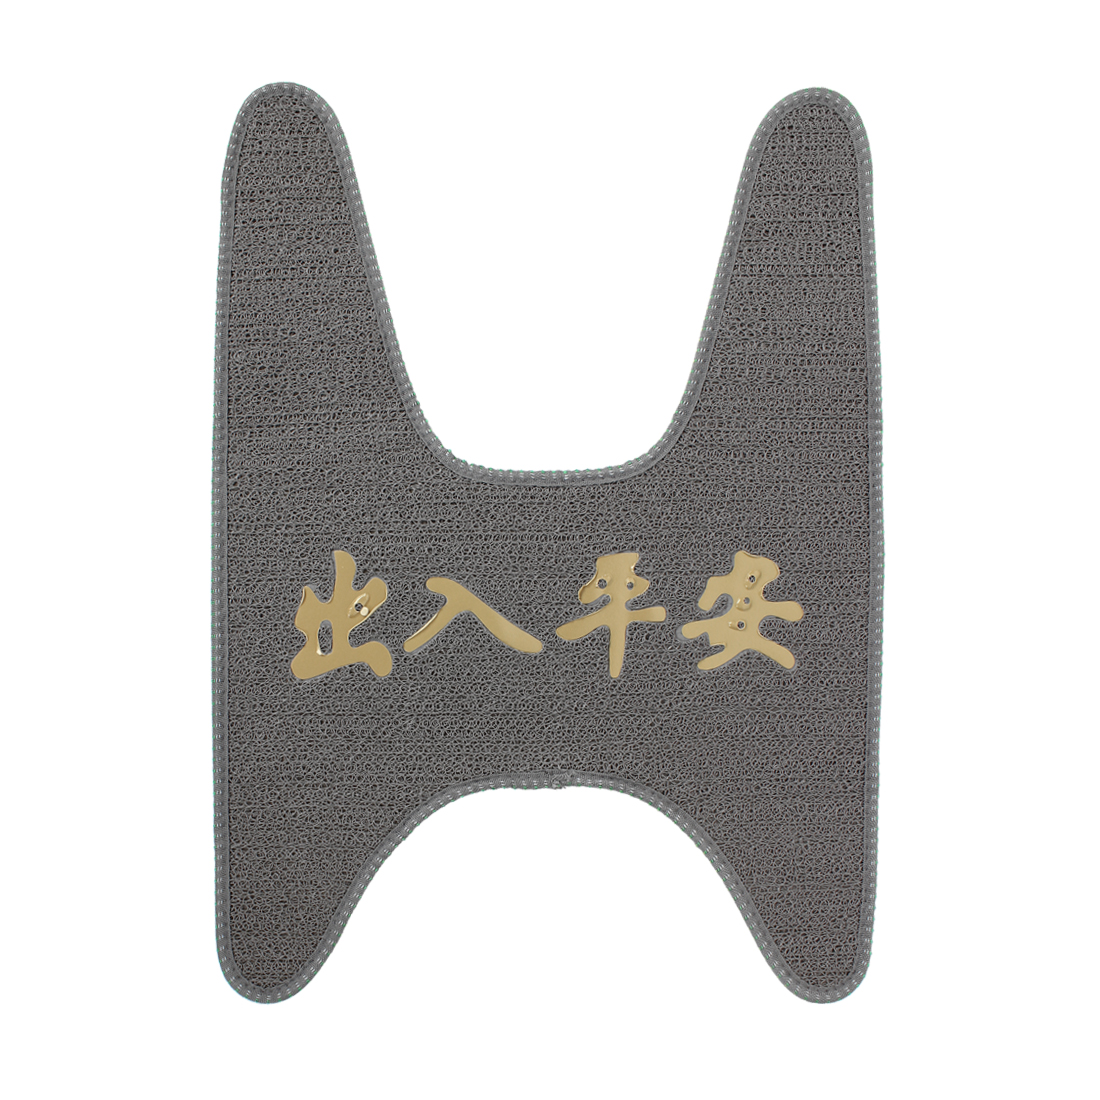 Women Motorcycle Scooter Foot Skid Pad Carpet Floor Mat Gray